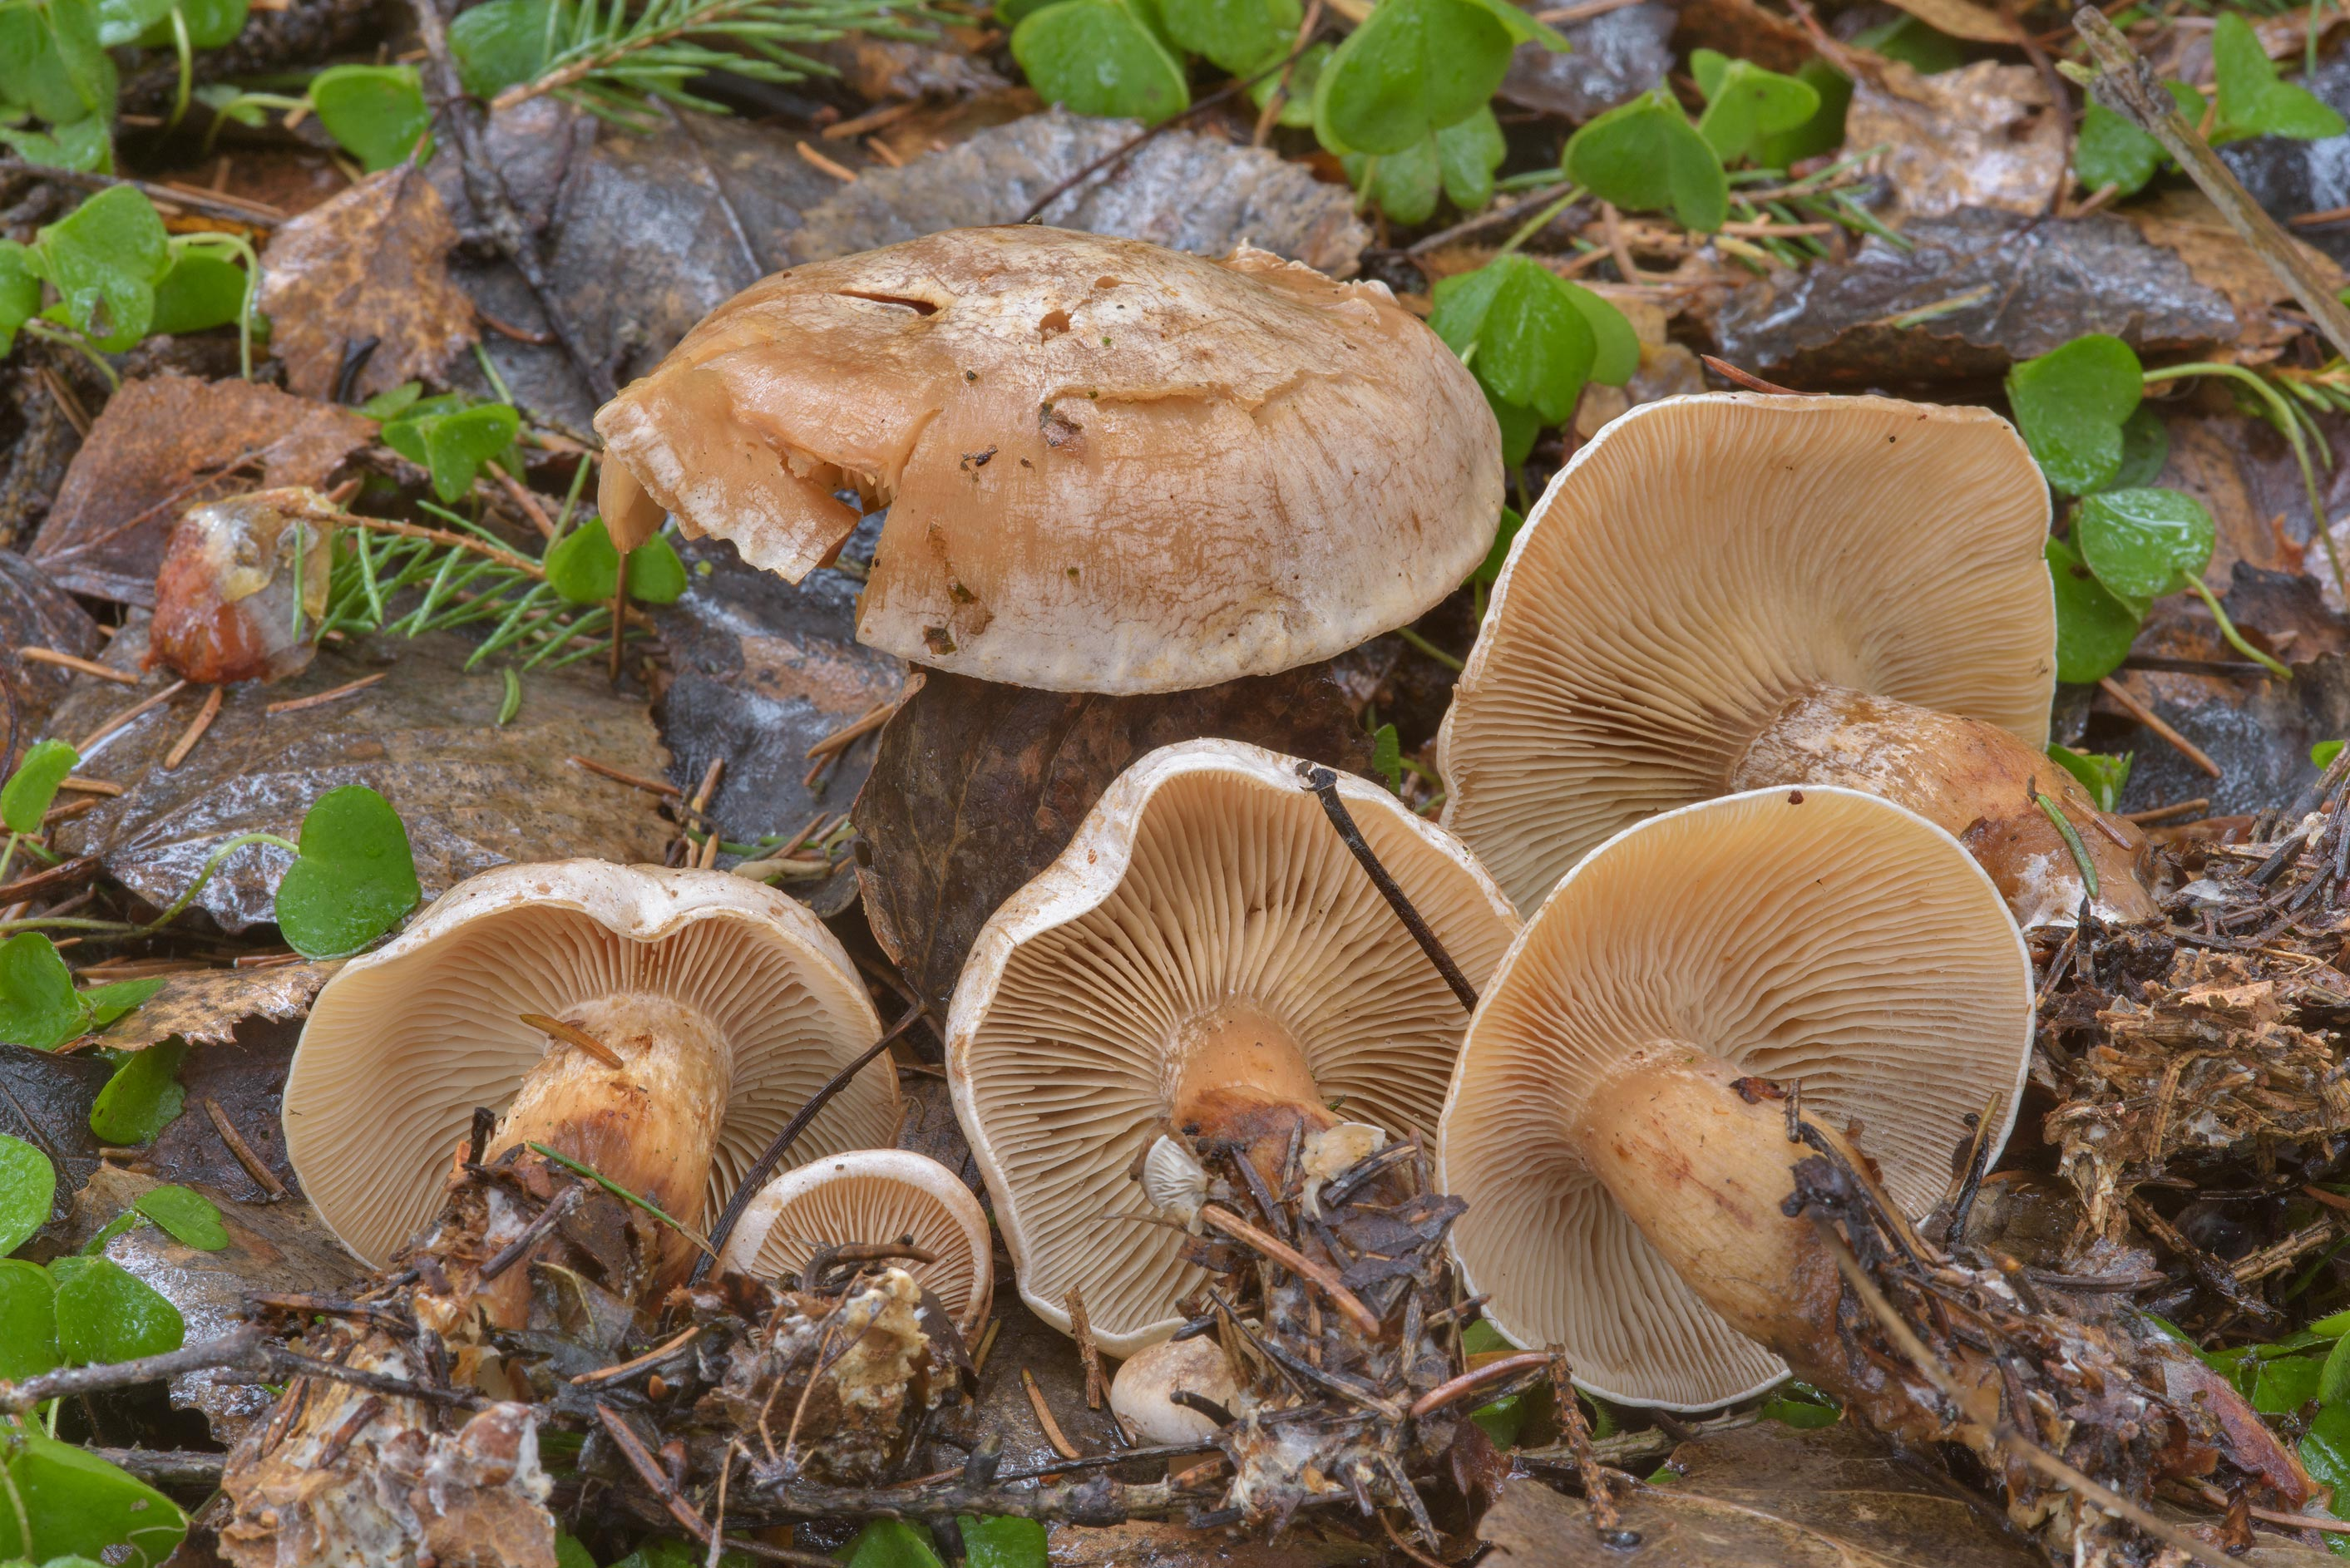 Late fall funnel mushrooms (Clitocybe rivulosa...a suburb of St.Petersburg, Russia